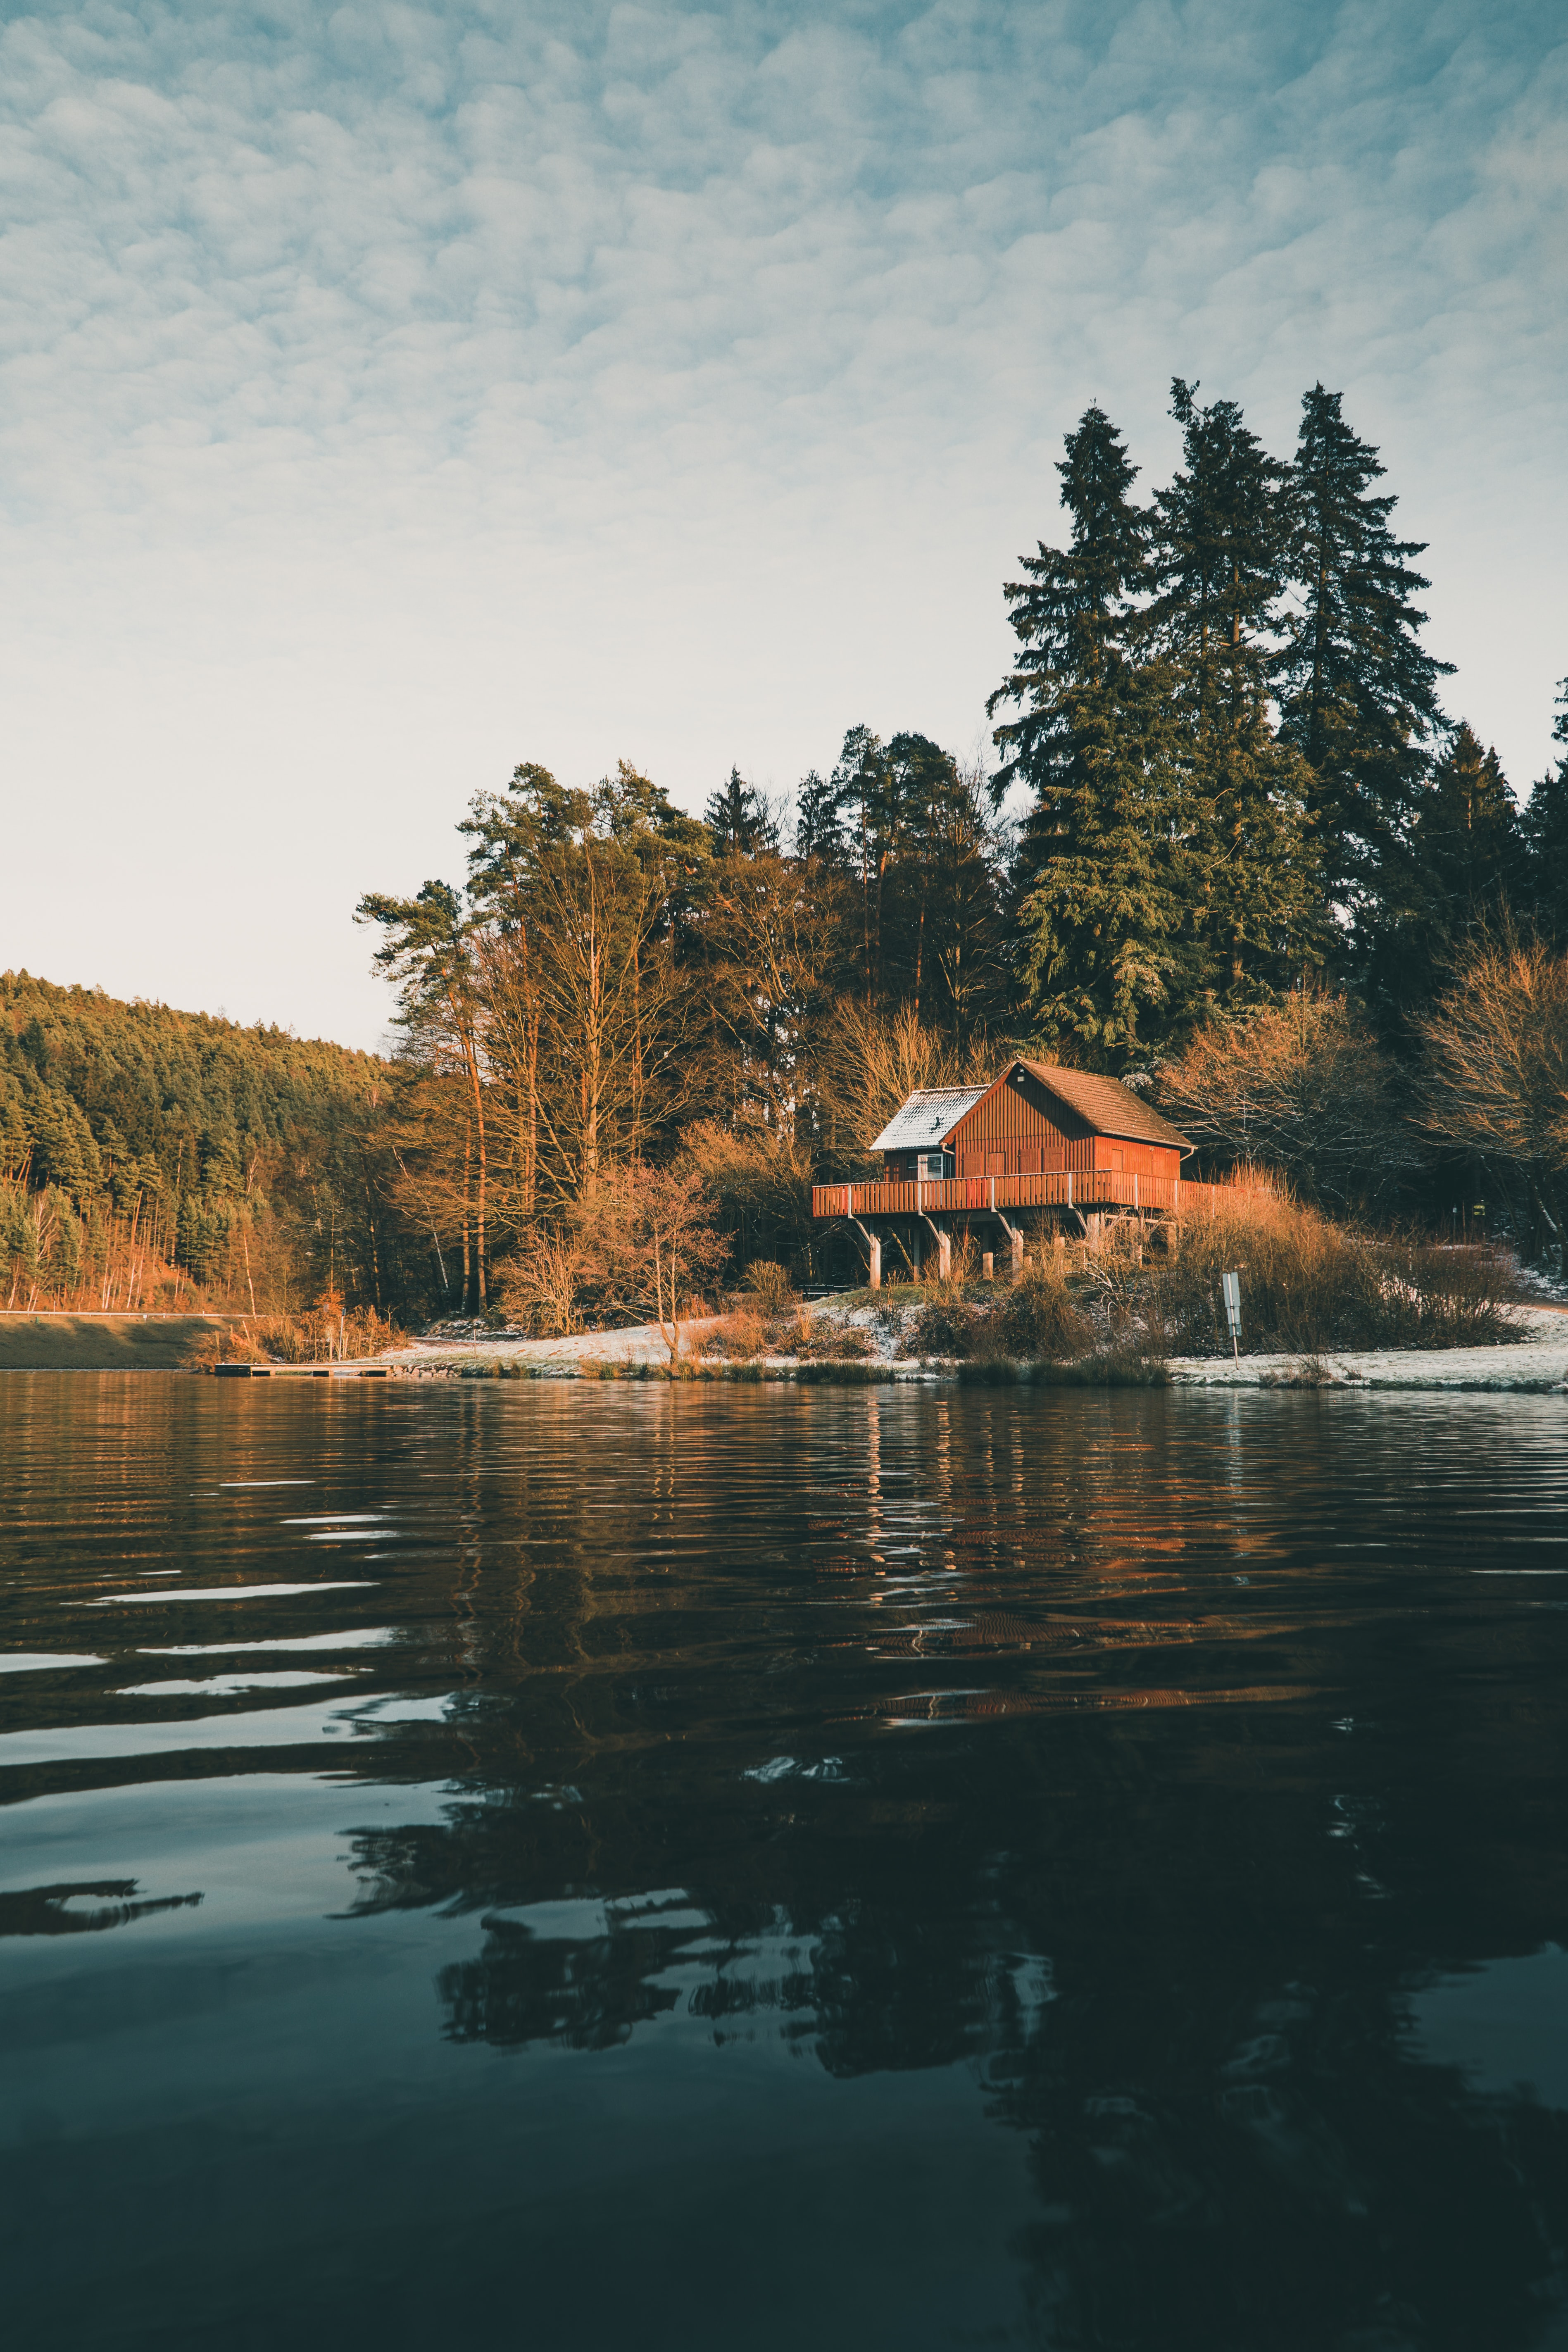 136690 free wallpaper 240x320 for phone, download images Nature, Water, Trees, Forest, House 240x320 for mobile